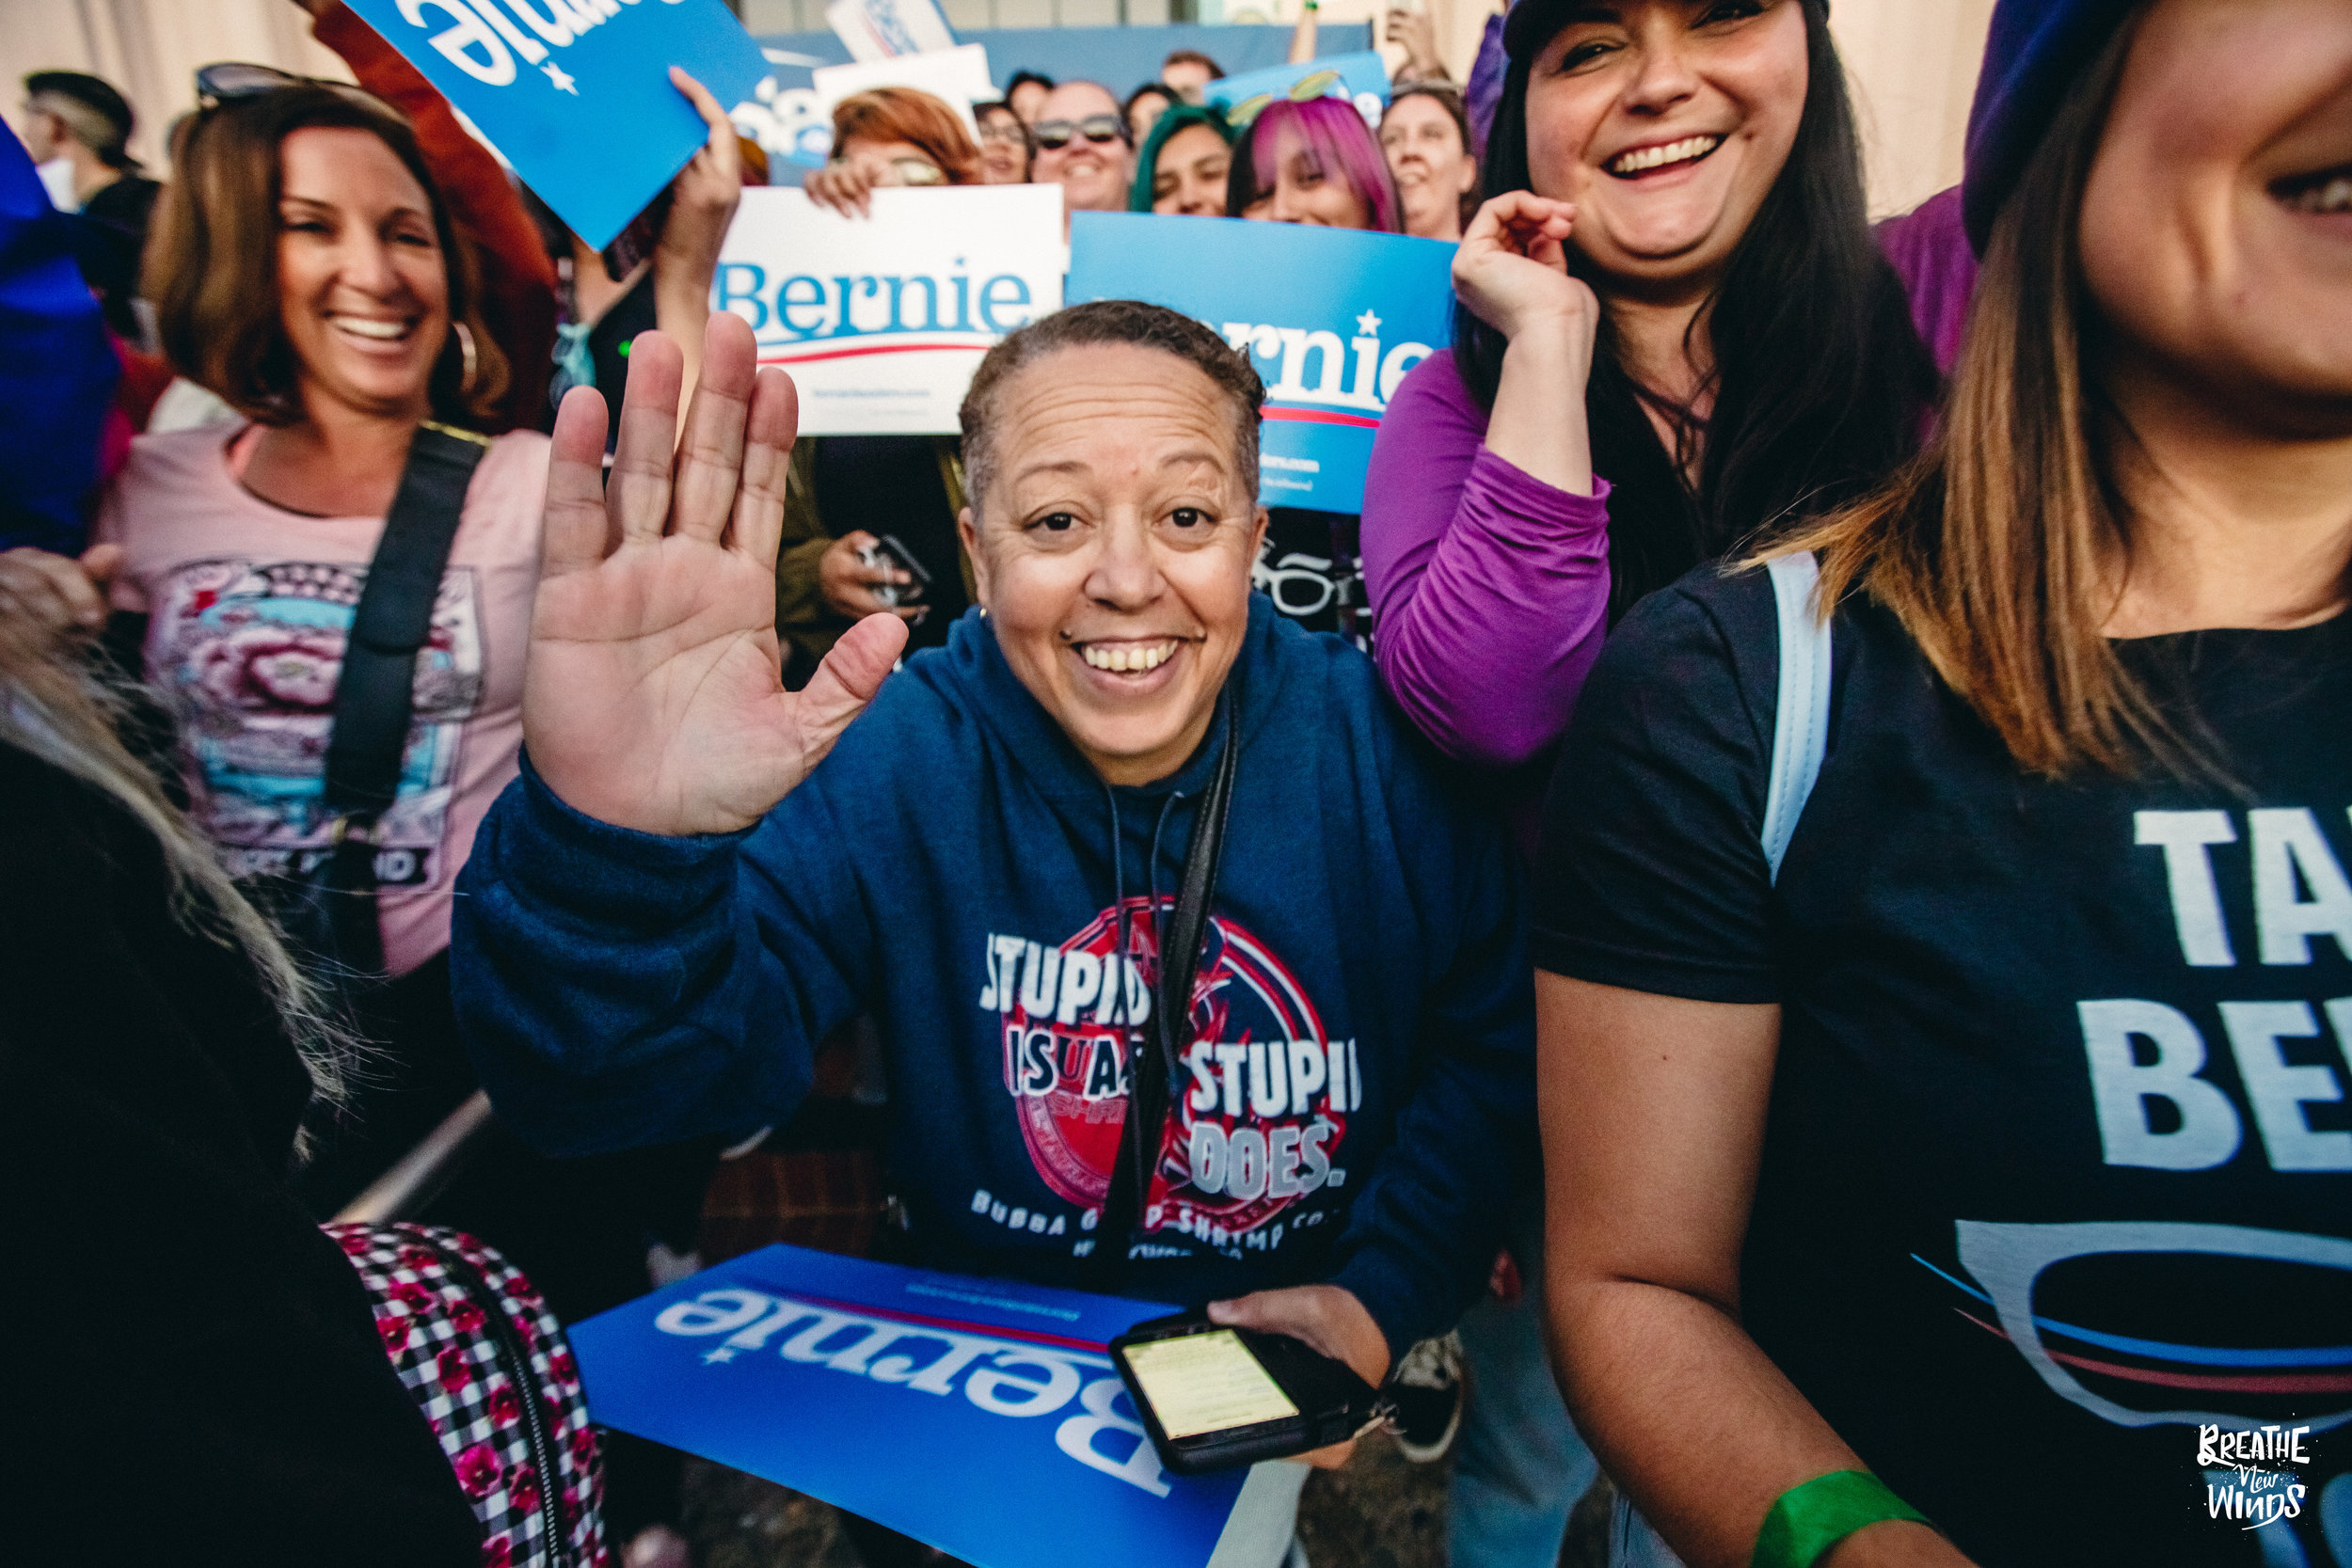 BernieInSD_22March2019-Crowd (90 of 94).jpg